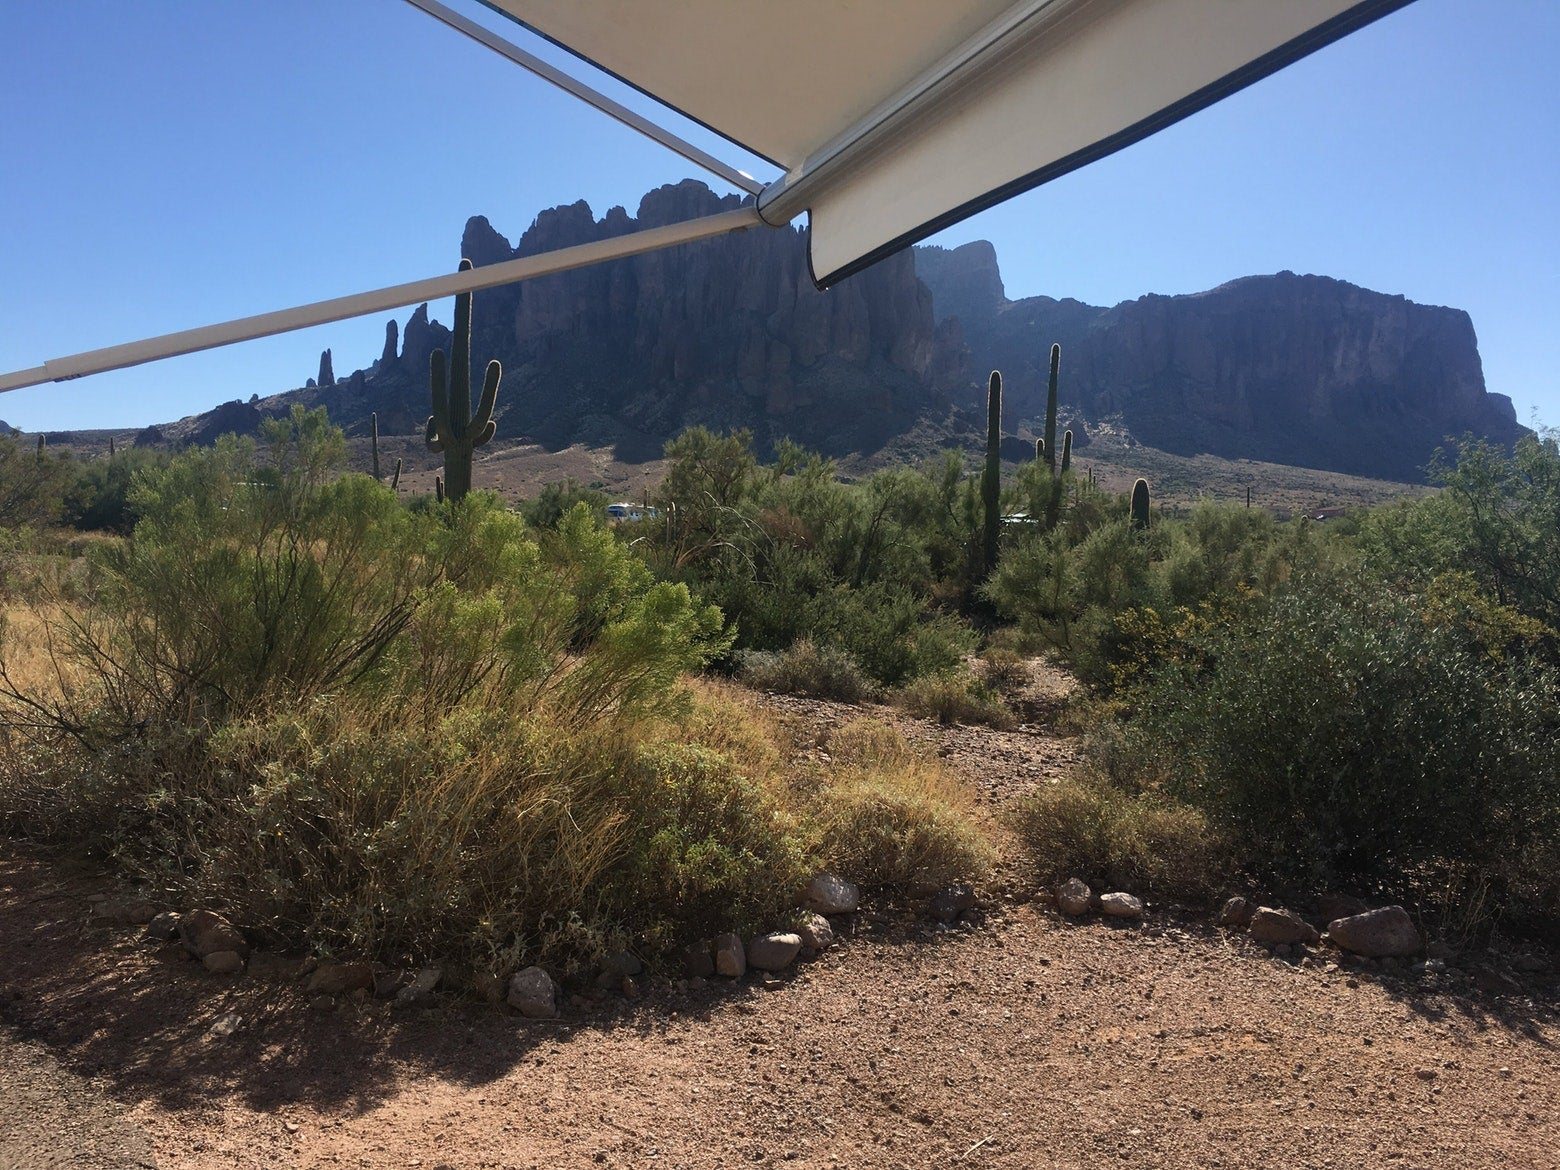 shrubby desert view from under an RV's canopy at lost dutchman state park